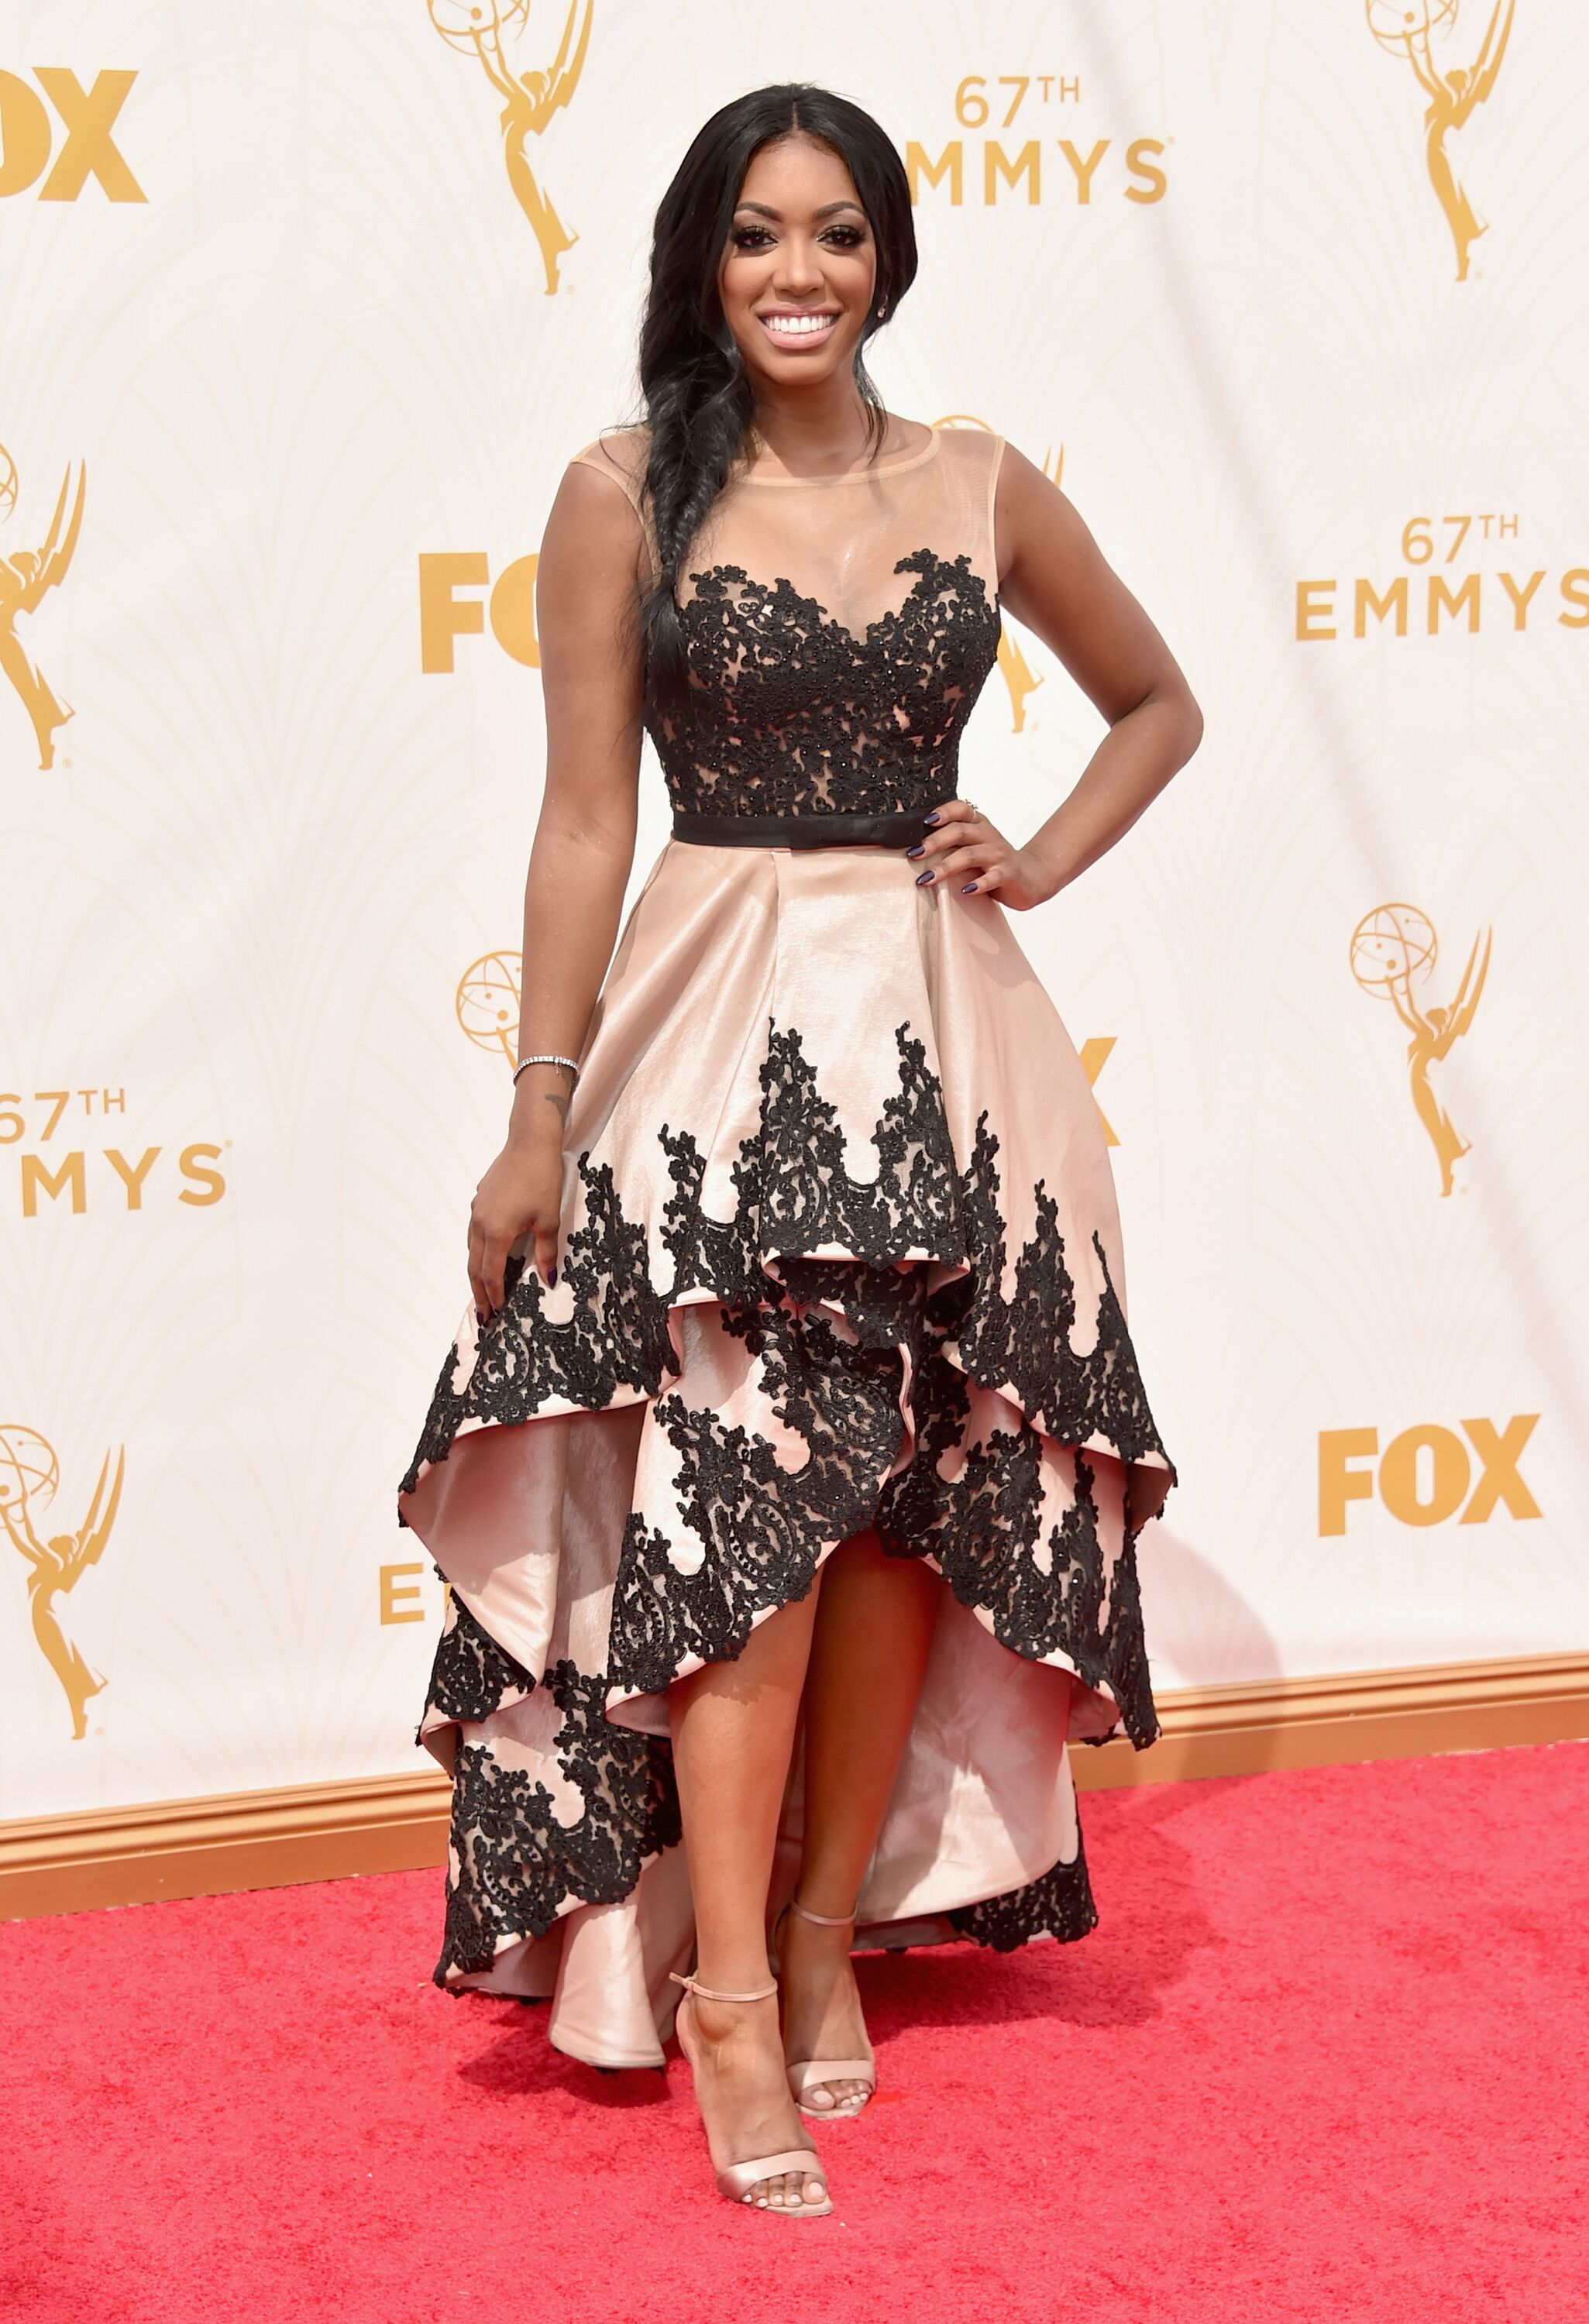 Porsha Williams at the 67th Emmy Awards on September 20, 2015 in California. | Source: Getty Images